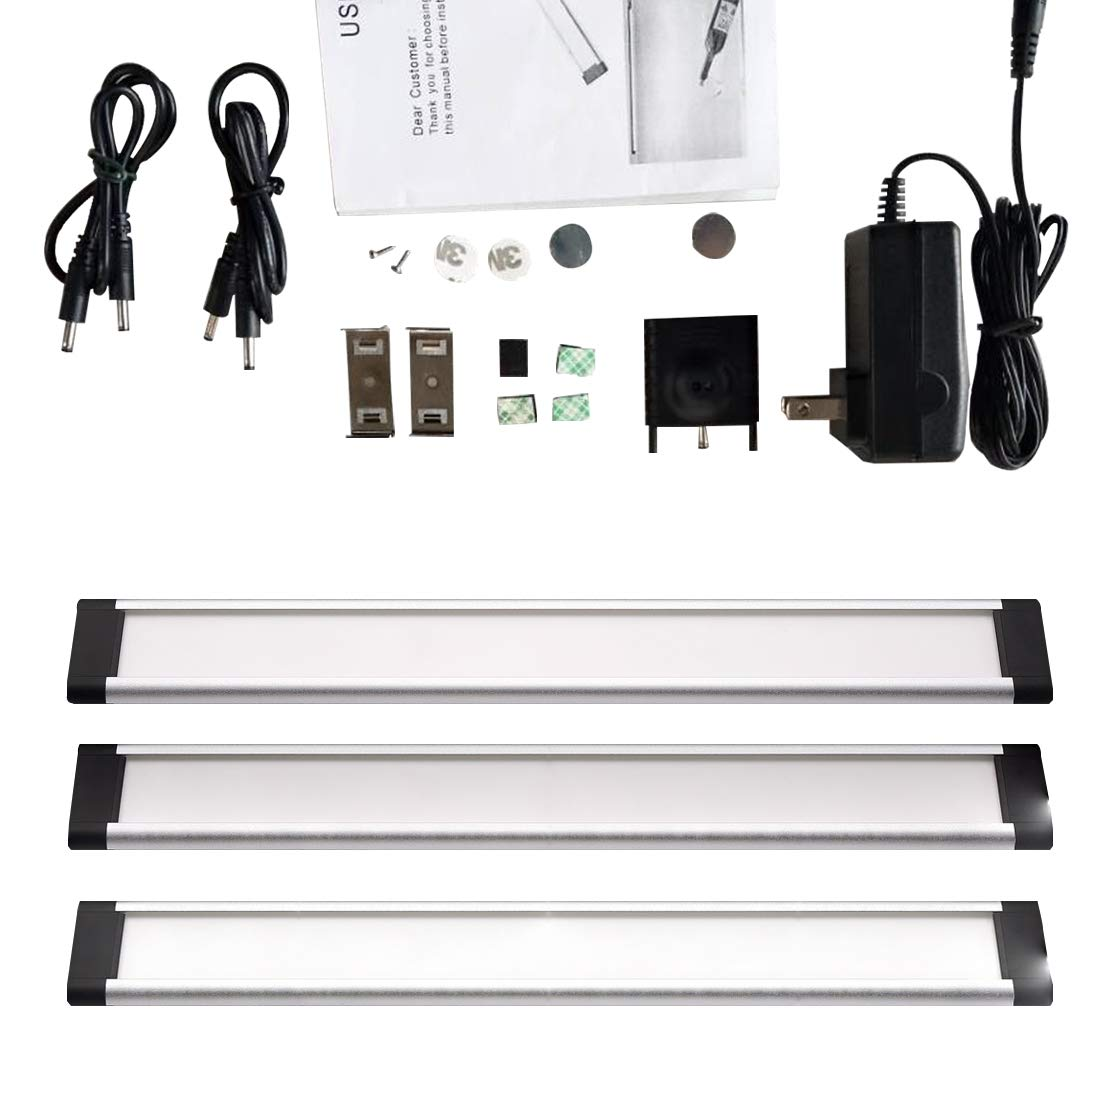 Marivon Under Cabinet Lighting Hand Wave Activated - Touchless Dimming Control LDE Lights Kit Adjusatble Warm White and Cool White (2800K-6500K)